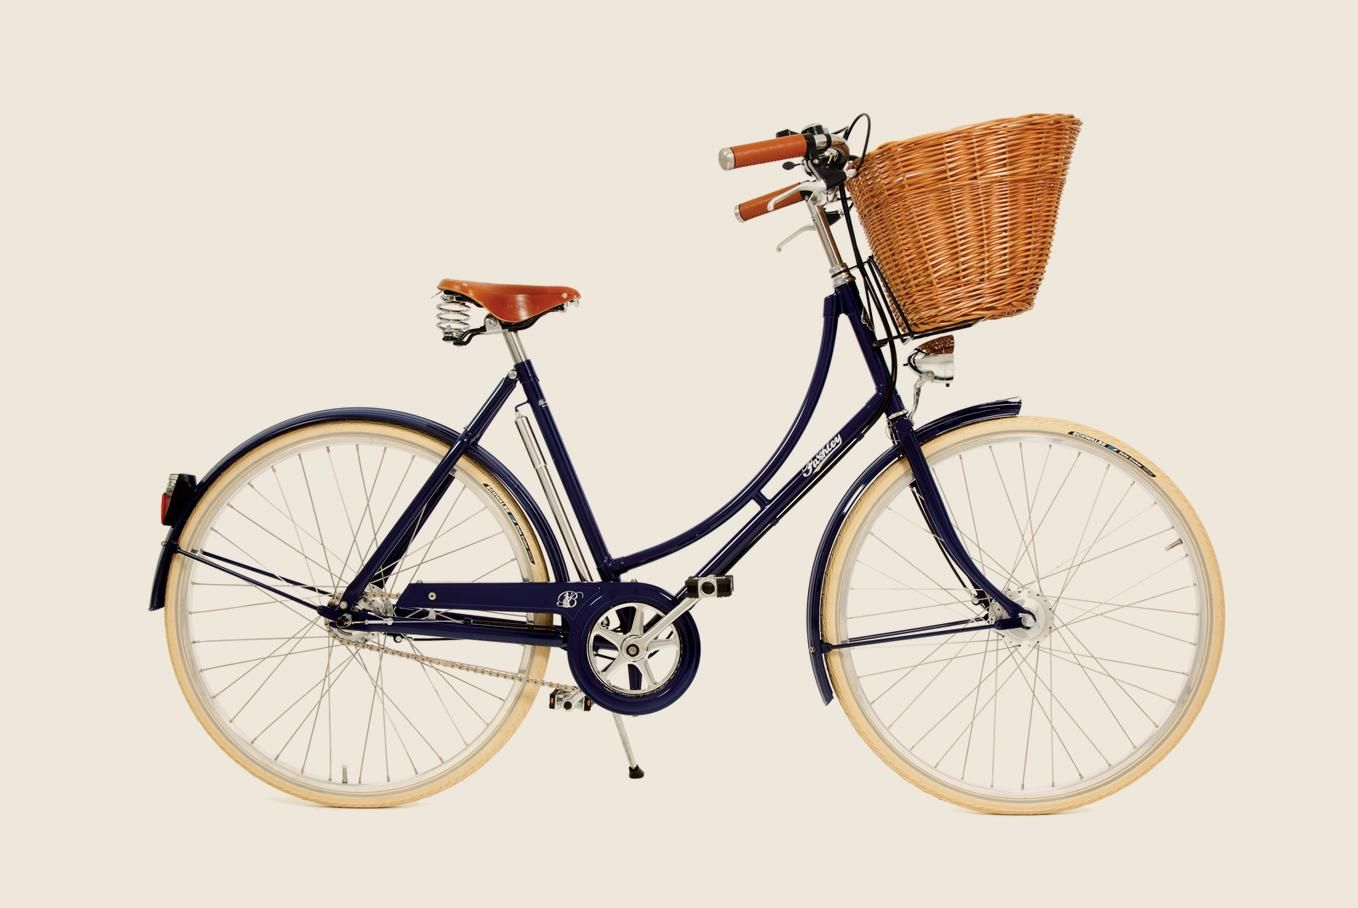 The Pashley Britannia Classic Bike features a traditionally lugged and  brazed hand-built frame and has elegant looks for country rides.